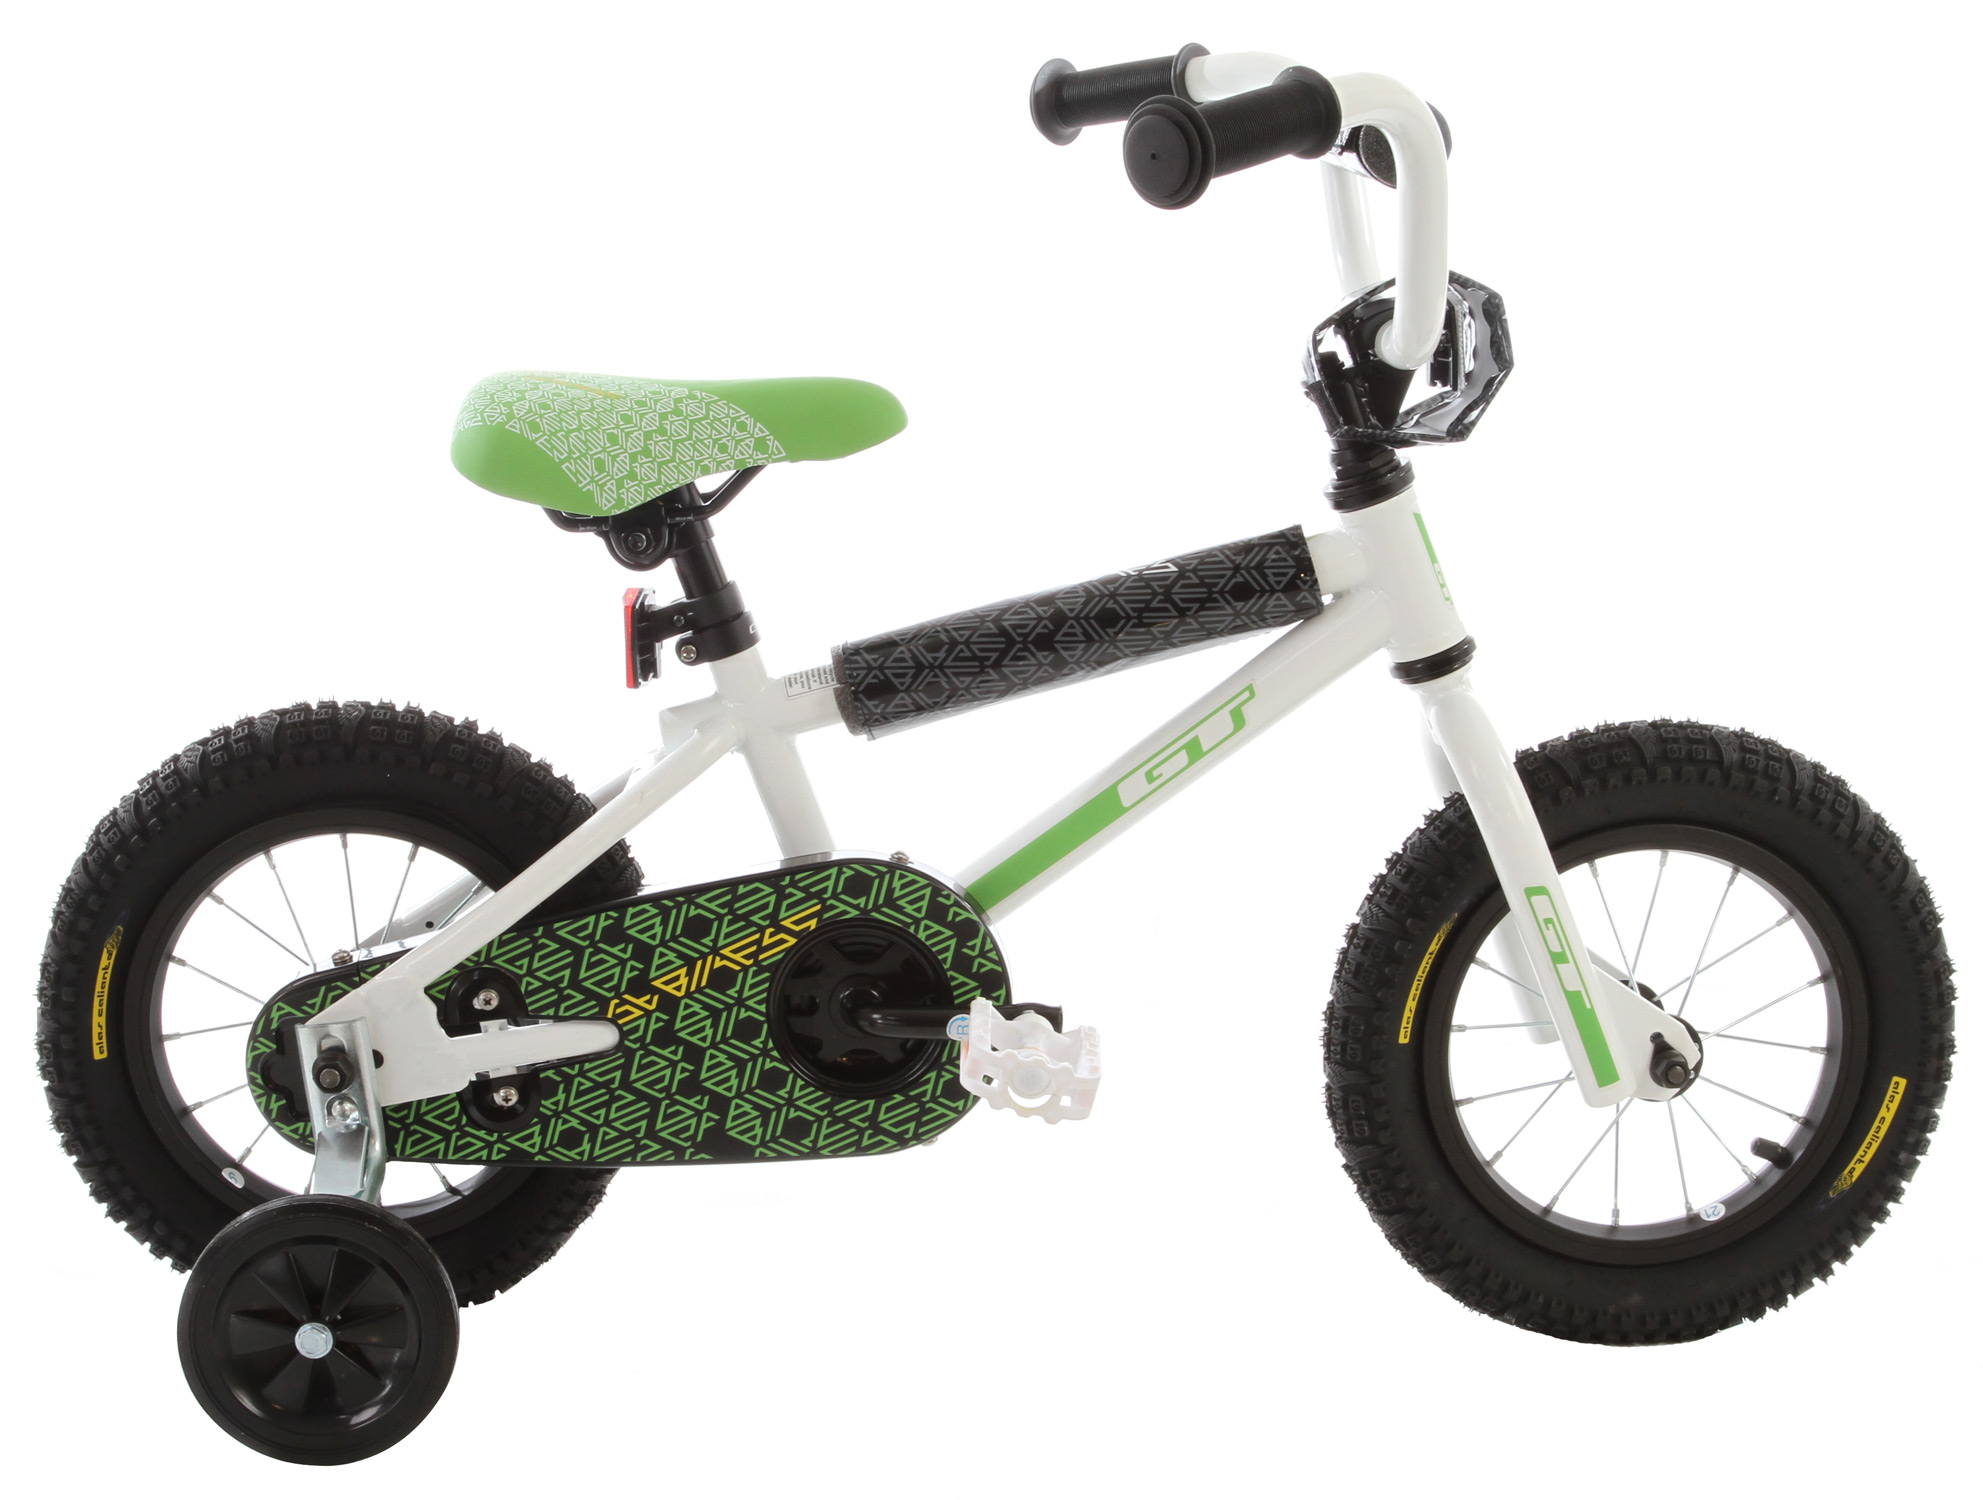 "BMX Key Features of the GT Mach One Mini Cb BMX Bike: Frame: Hi-Ten Steel Fork: Hi-Ten, 3/8, 1"" Crank: Steel, 1 pcs, 92mm Steel 33T Bottom Bracket: America Loose Ball Pedals: GT Mini Plastic Rear Cog: KT Cro-Mo 16T Chain: KMC Z410, Single Rims: HJC P-6Ns 16 F, R Hole Tires: GT Wing, 2 1 F, R Wire Hubs: Freewheel 16 F, R Hole Brakes: Coaster Brake Handlebars: Steel, 460 Stem: Threaded, 32 Headset: Threaded Saddle: GT Mach1 Min Rail Seatpost: Steel, 25.4 X 220 - $127.99"